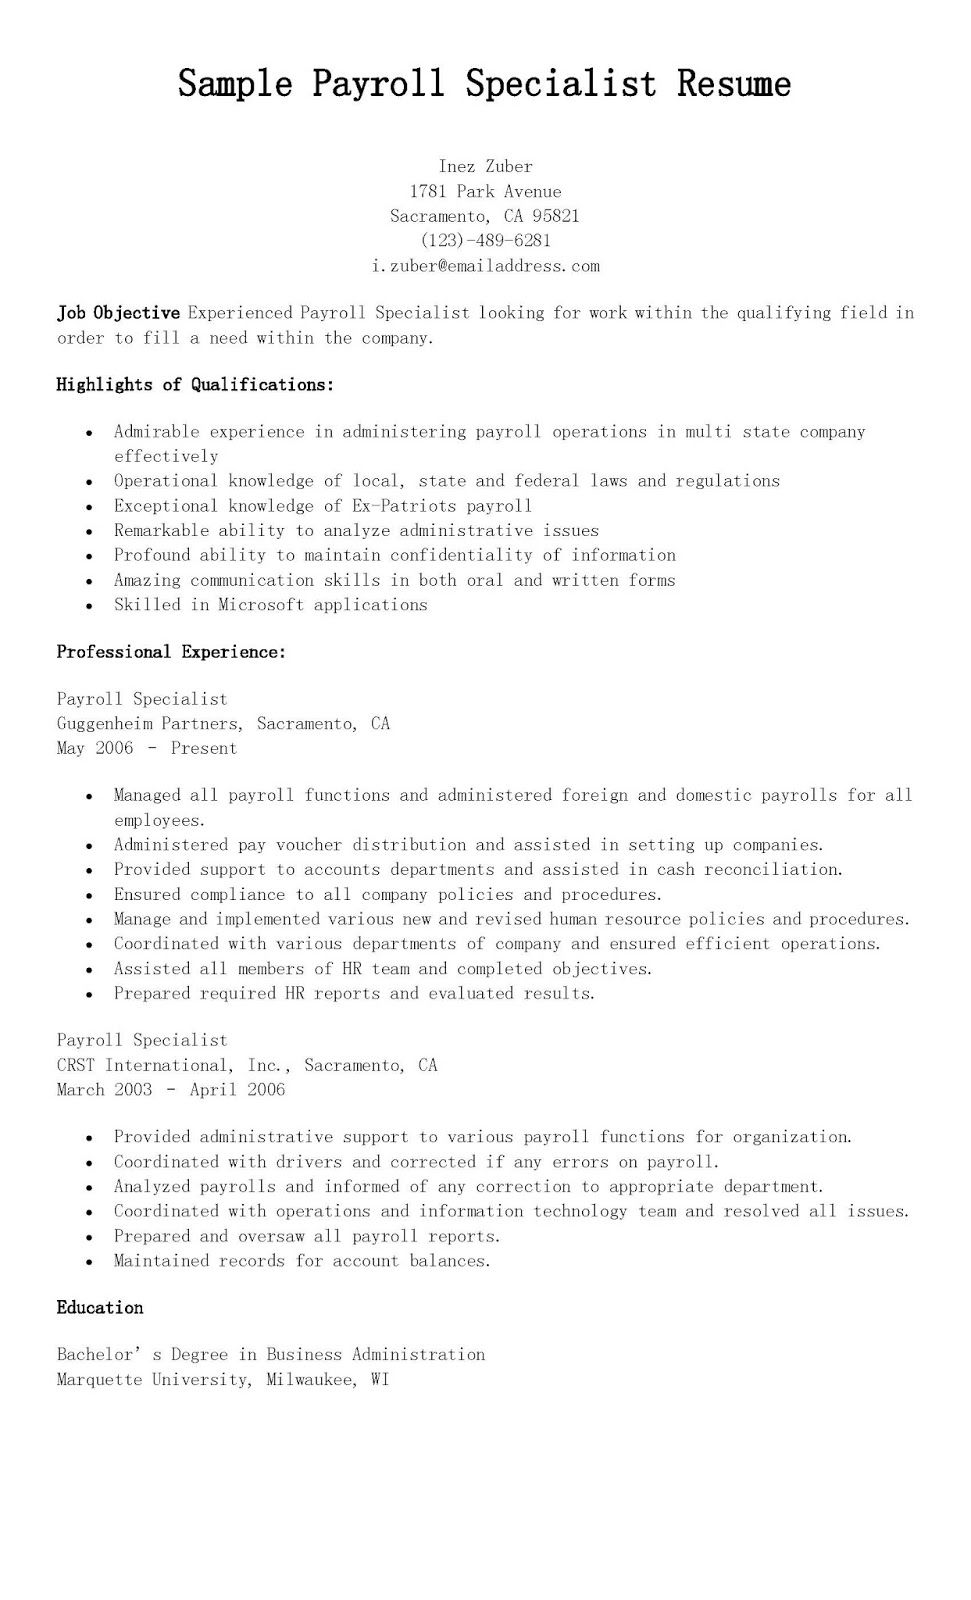 Sample Payroll Specialist Resume Resame Pinterest Resume